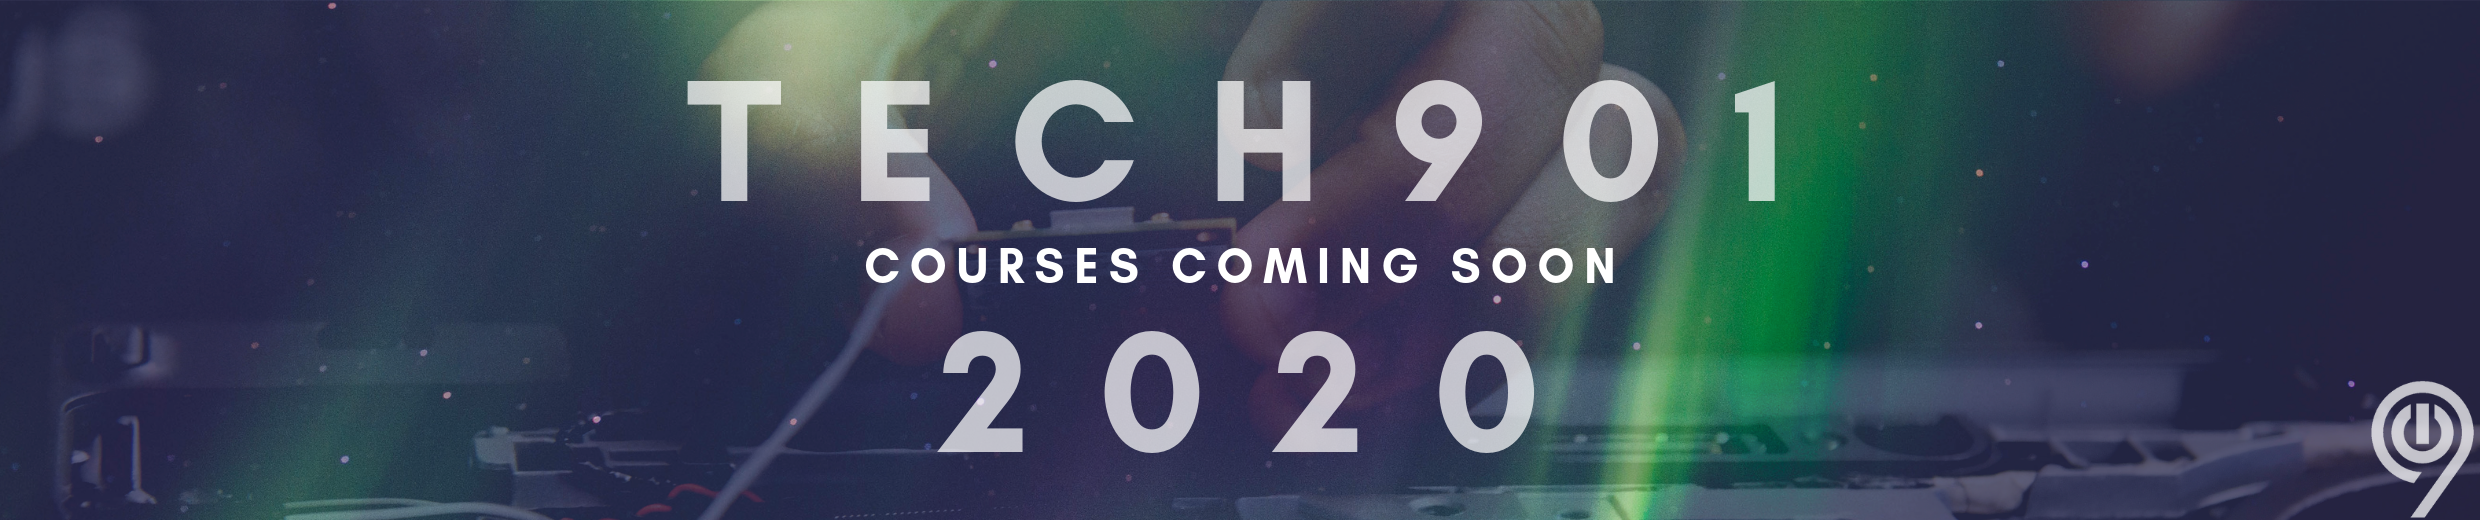 Tech901 2020_courses soon